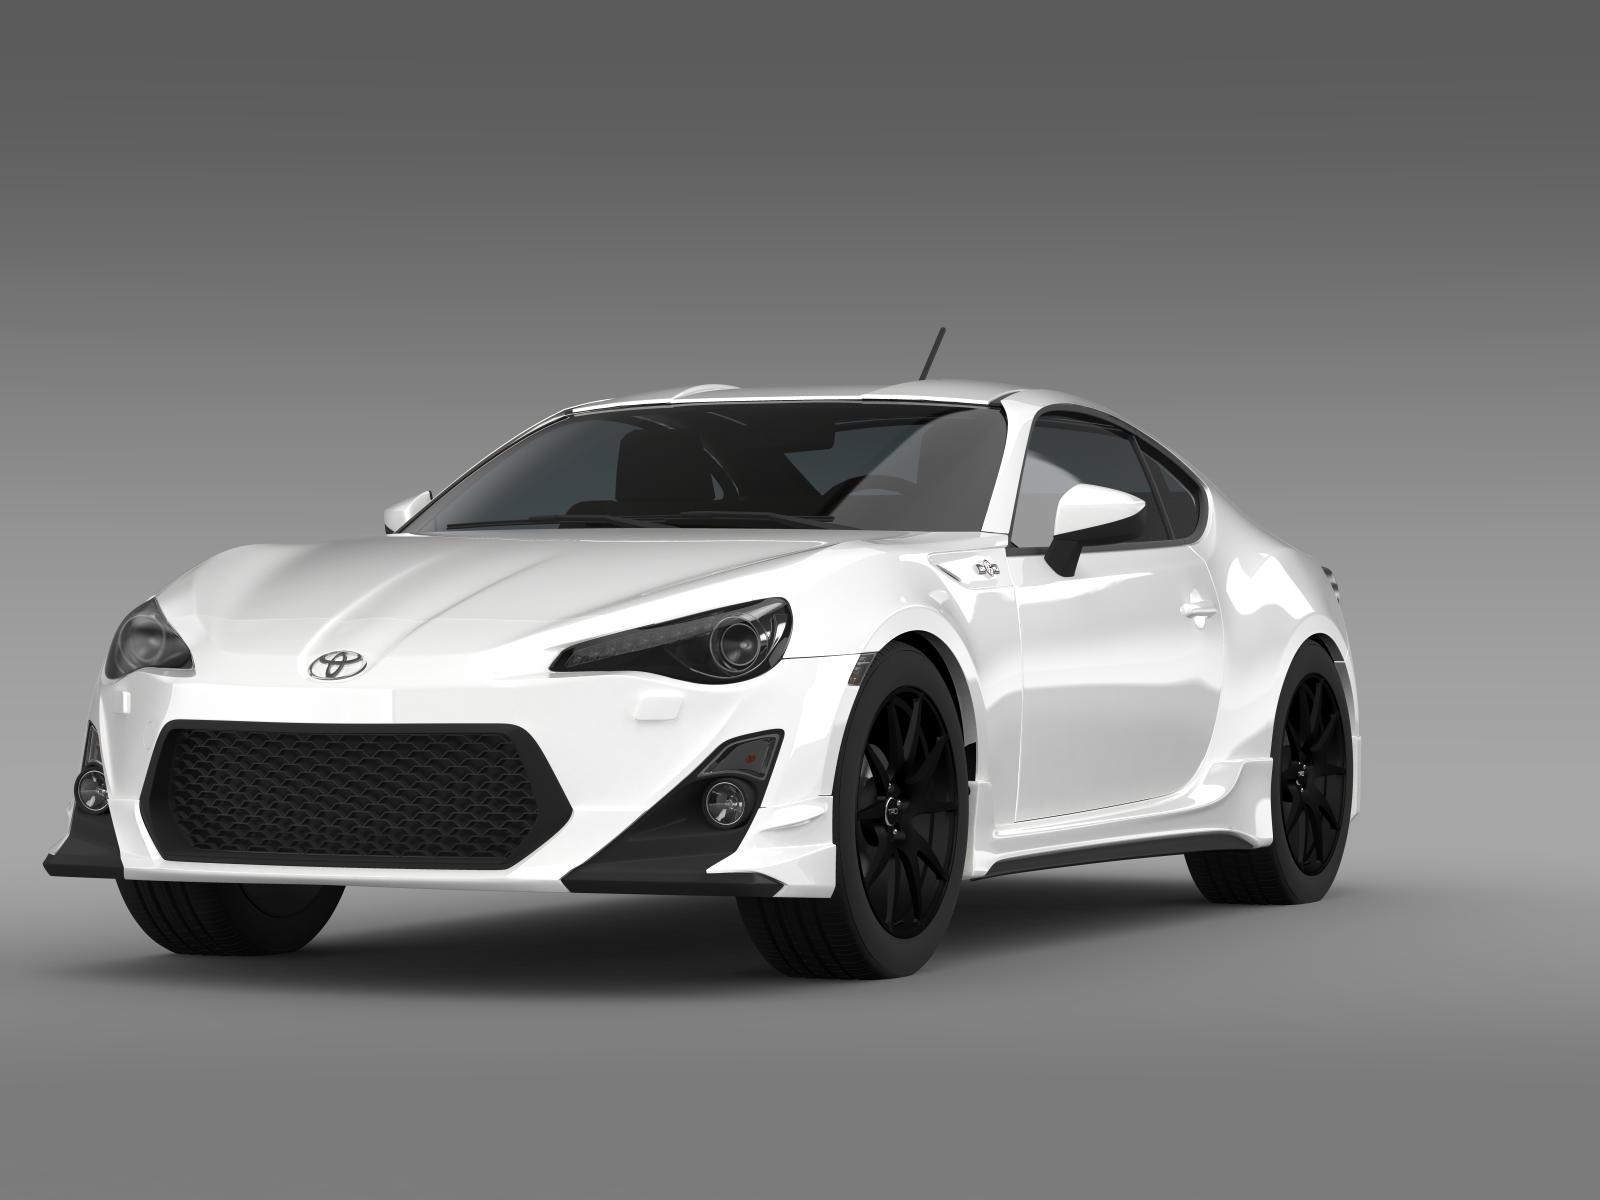 trd toyota gt 86 2014 3d model flatpyramid. Black Bedroom Furniture Sets. Home Design Ideas